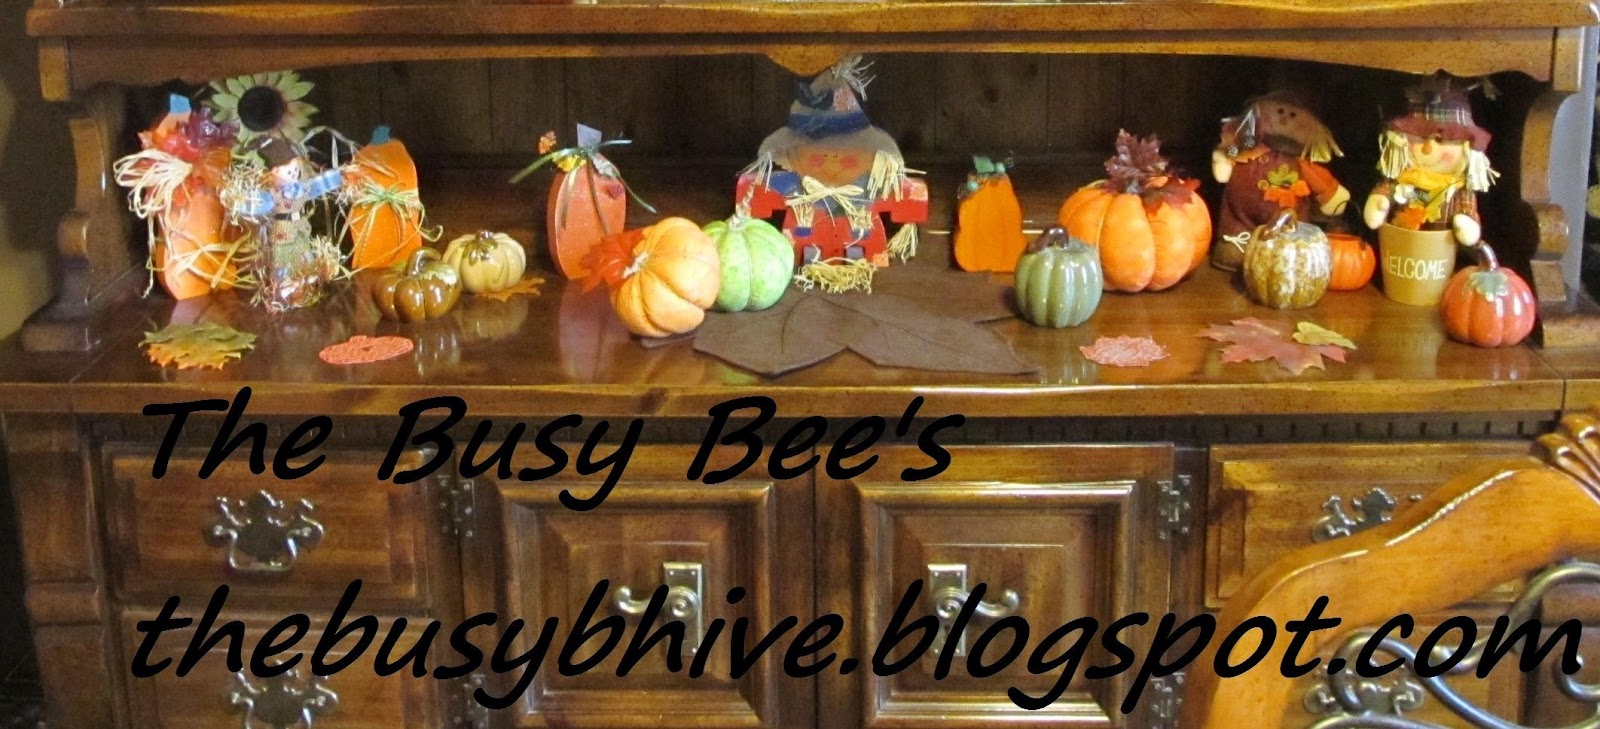 The busy bee 39 s fall decor at home for Bee decorations for the home